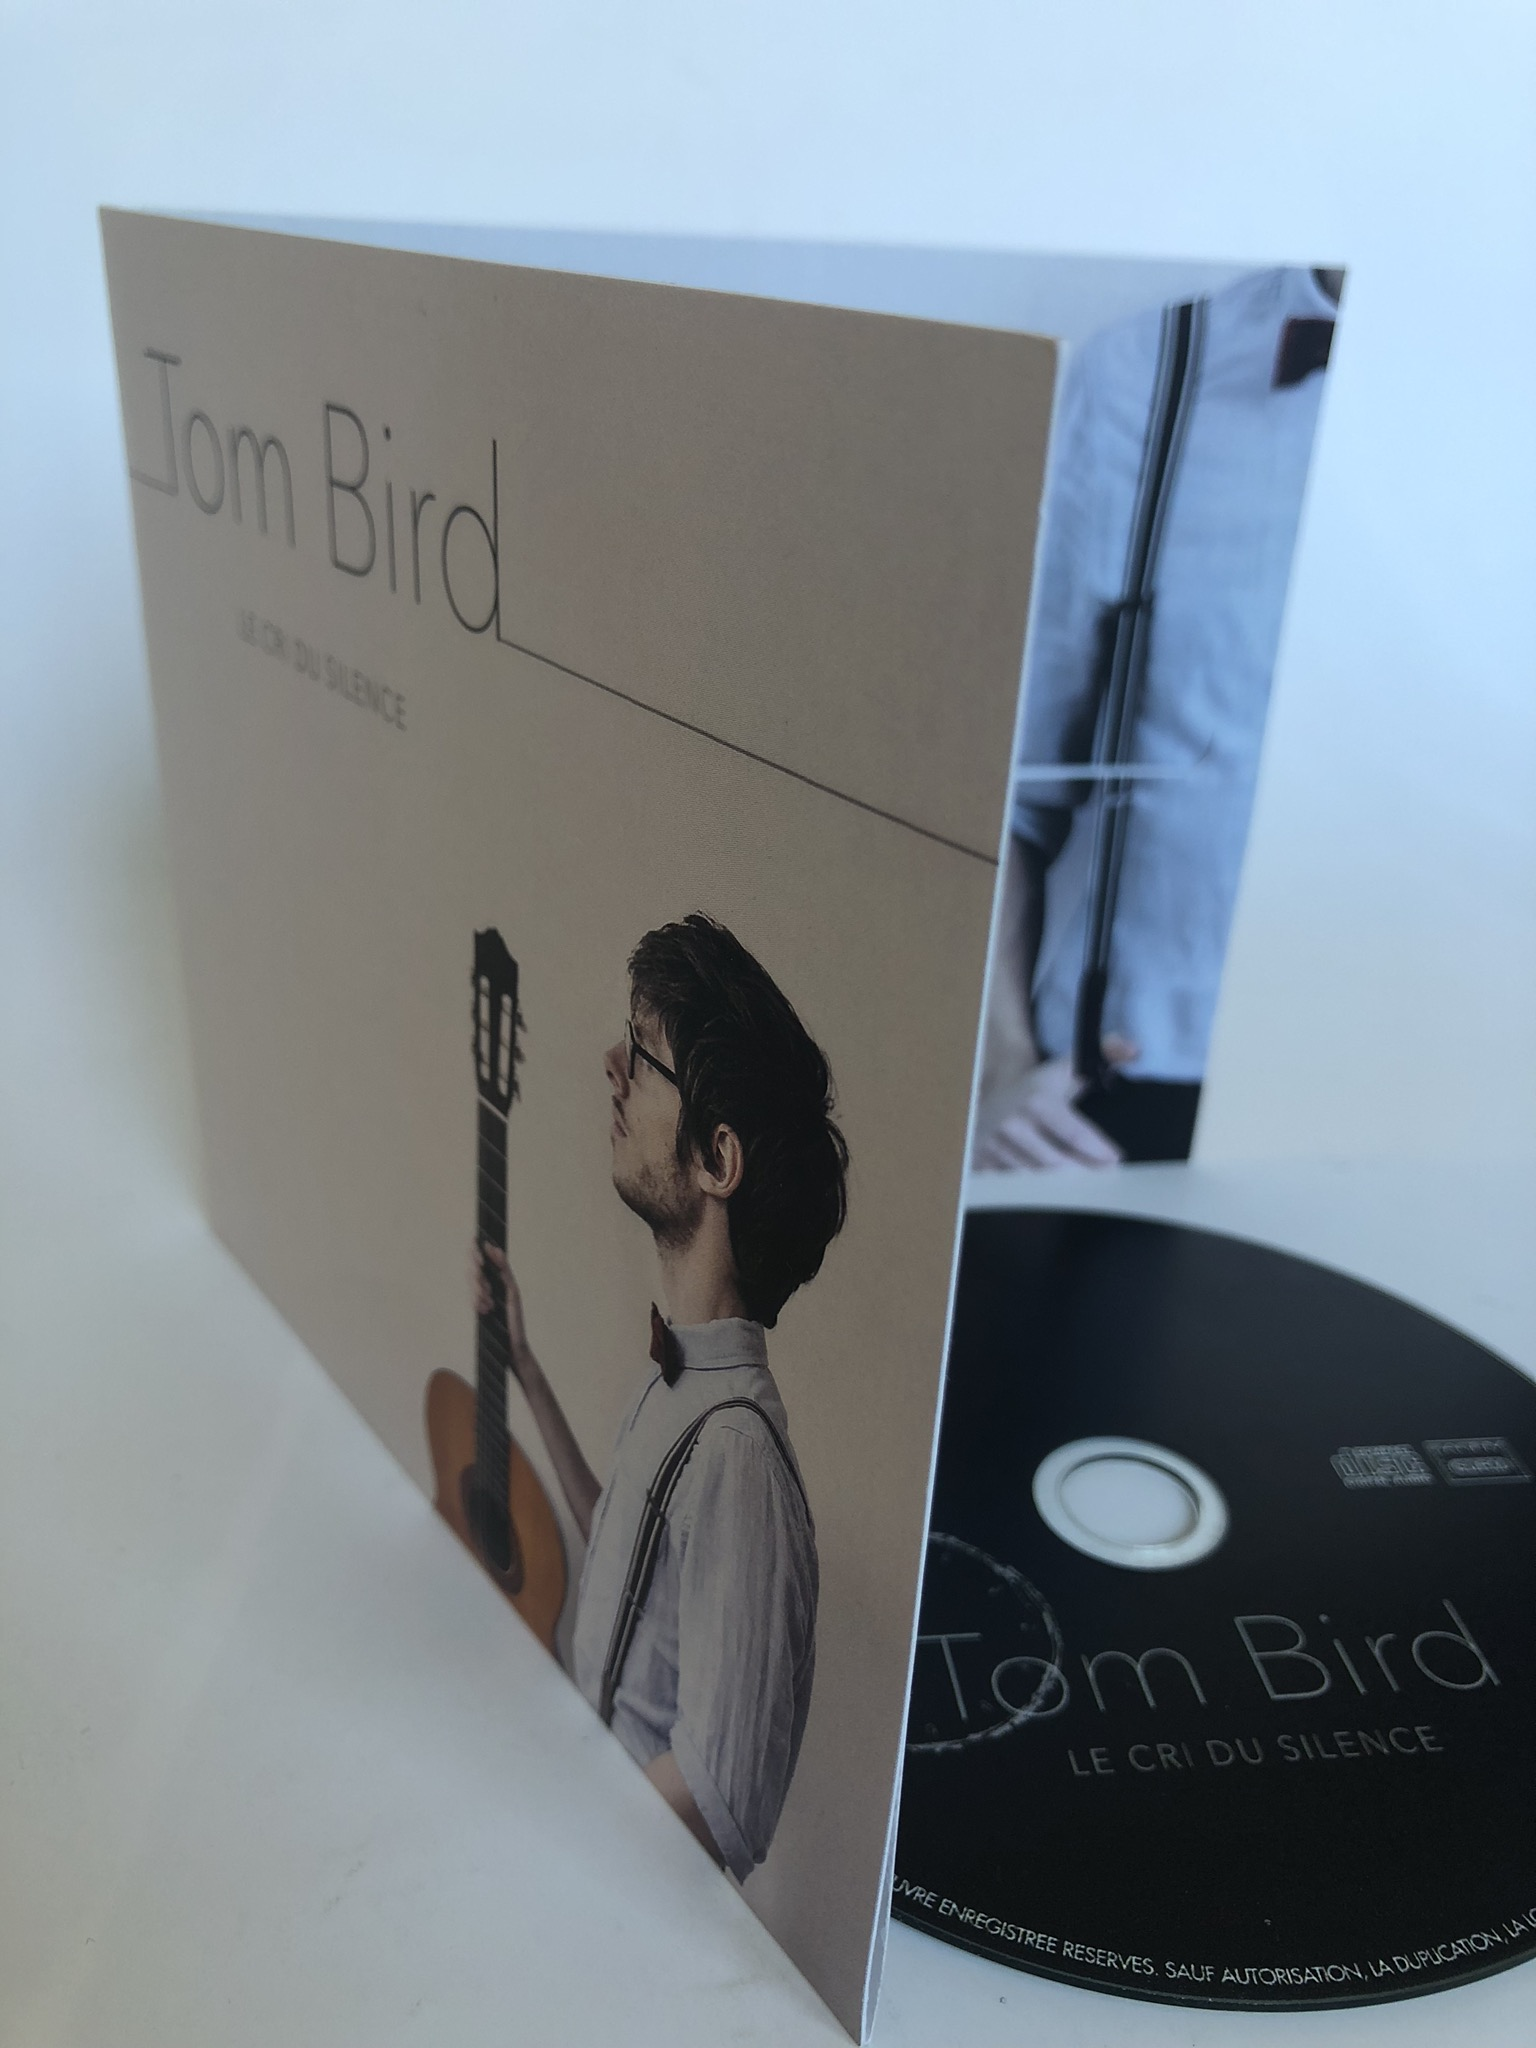 Tom Bird - Le Cri du Silence